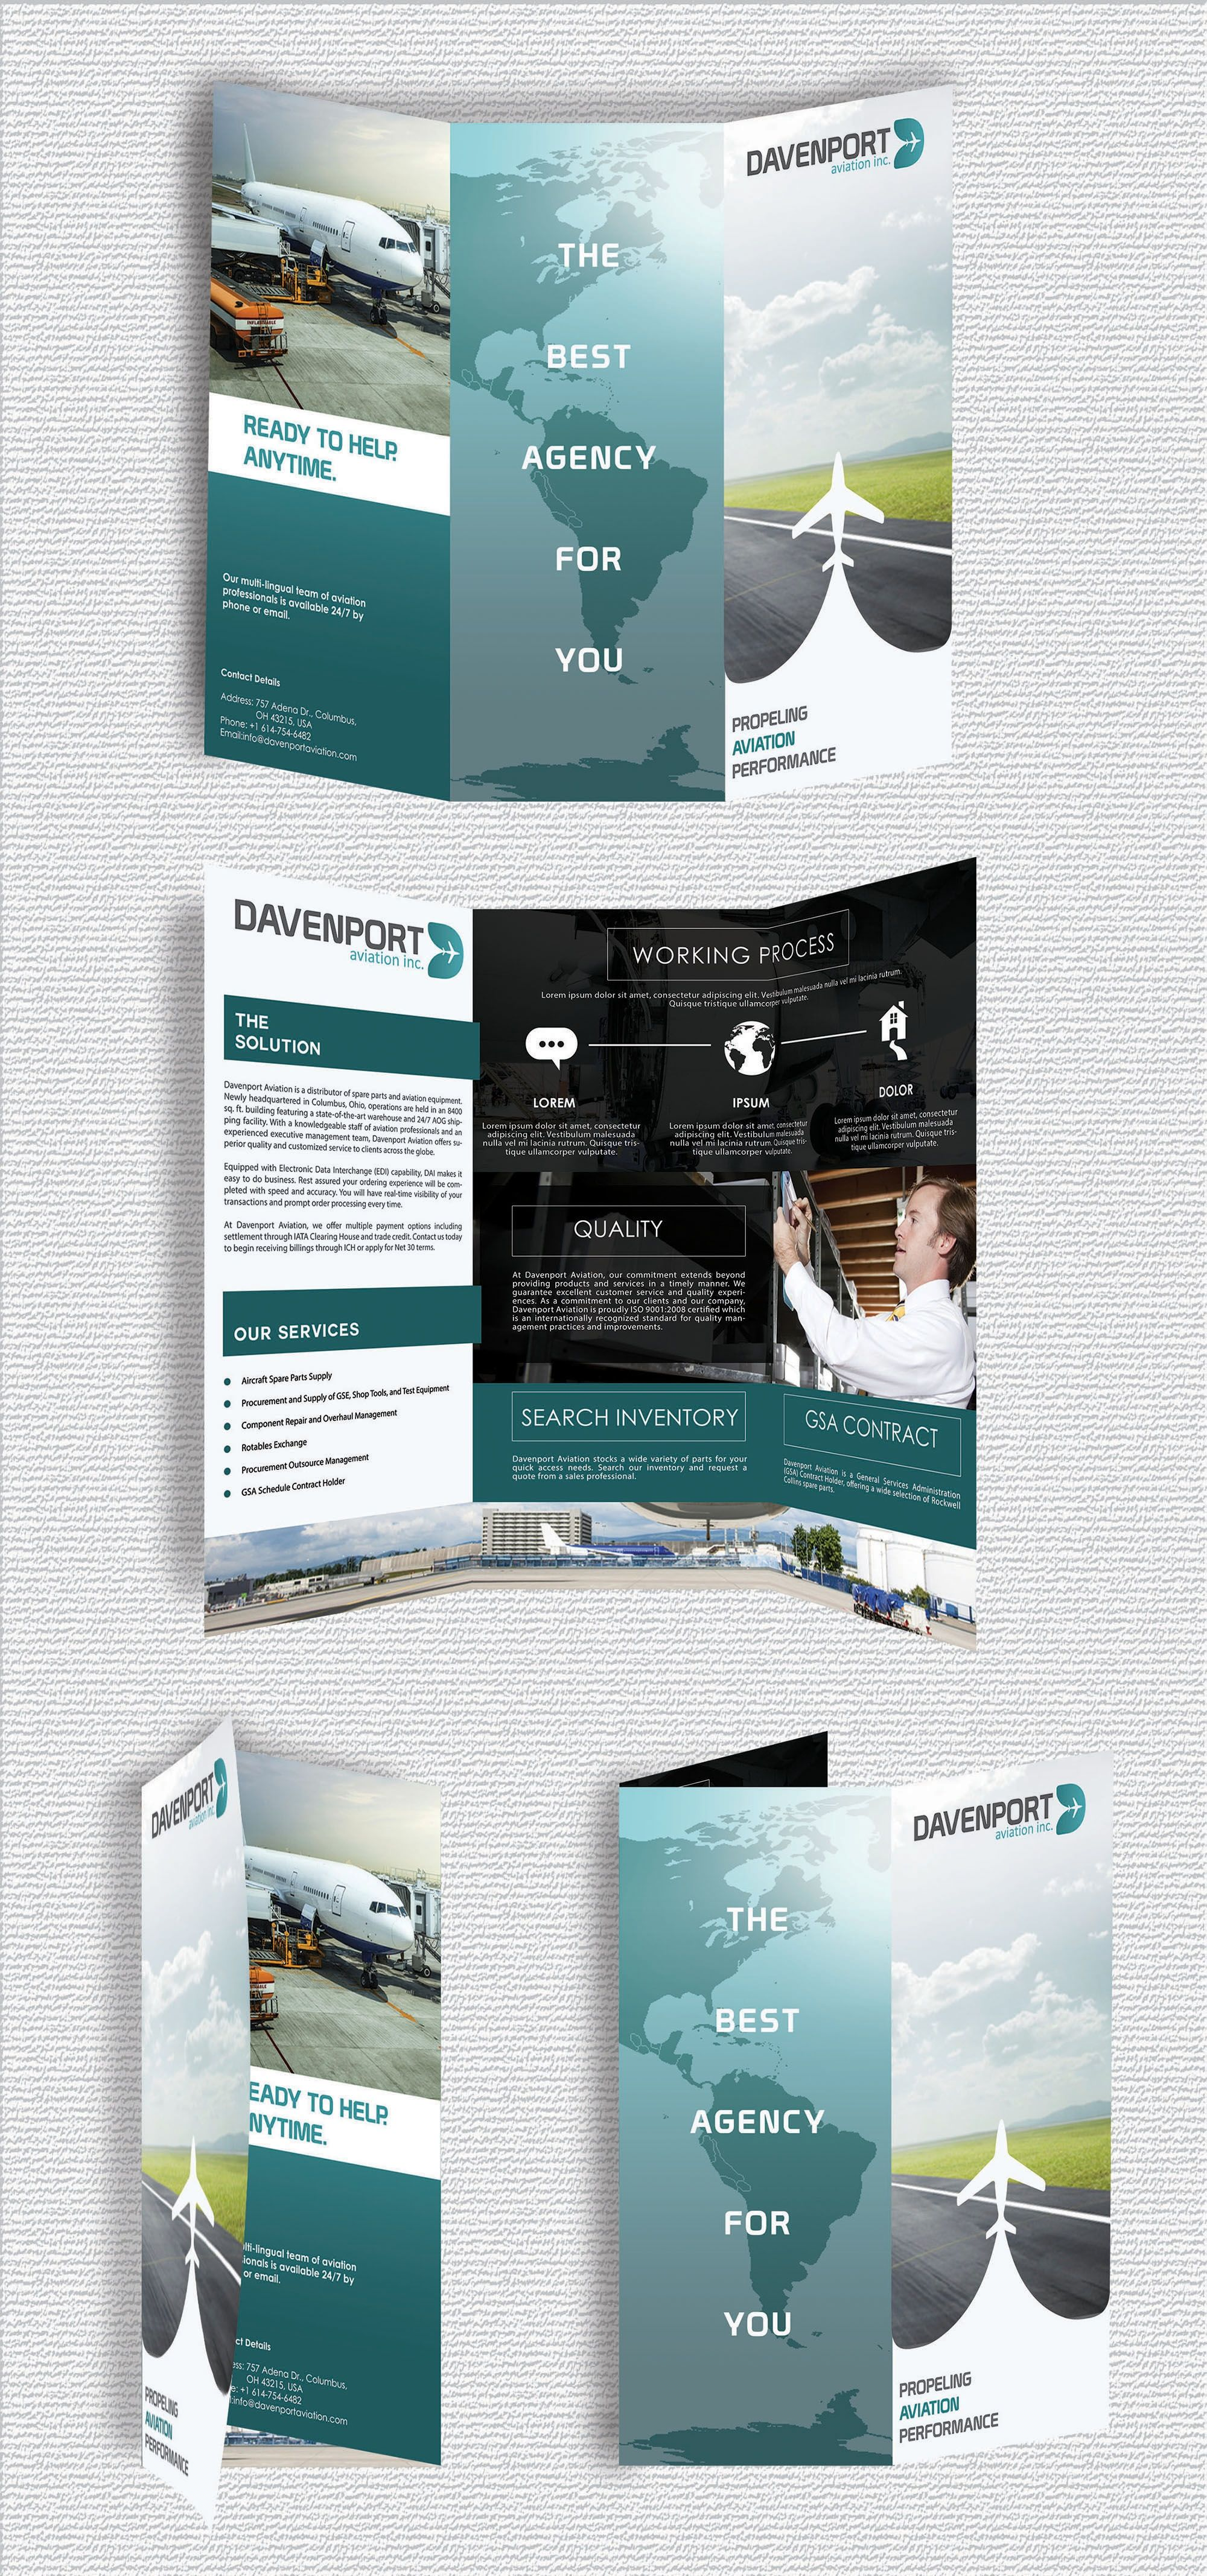 Designs | GLOBAL AVIATION SUPPLIER SEEKING FRESH DESIGN FOR MARKETING MATERIAL…